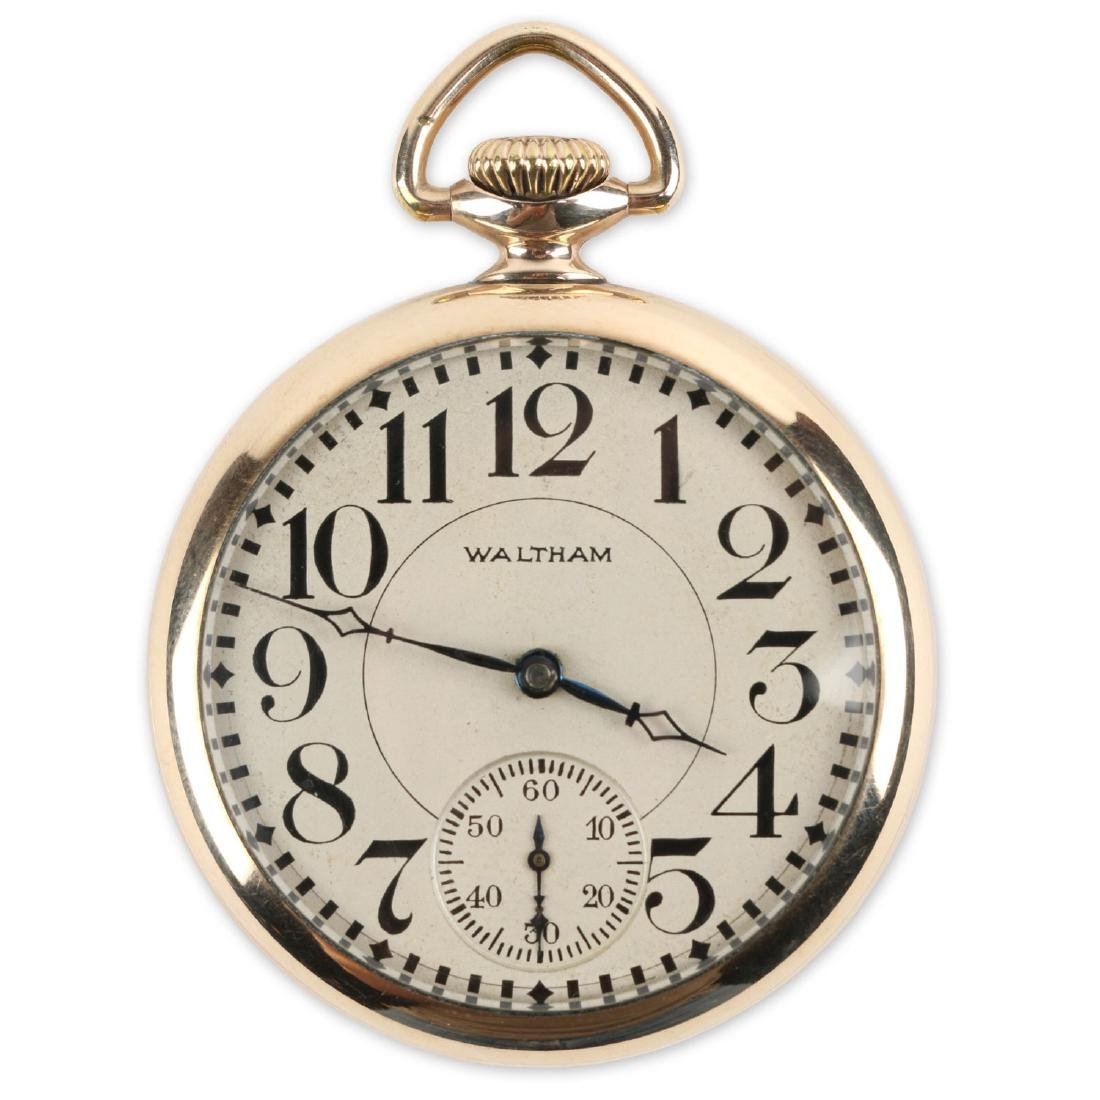 16S 17J Waltham Pocket Watch